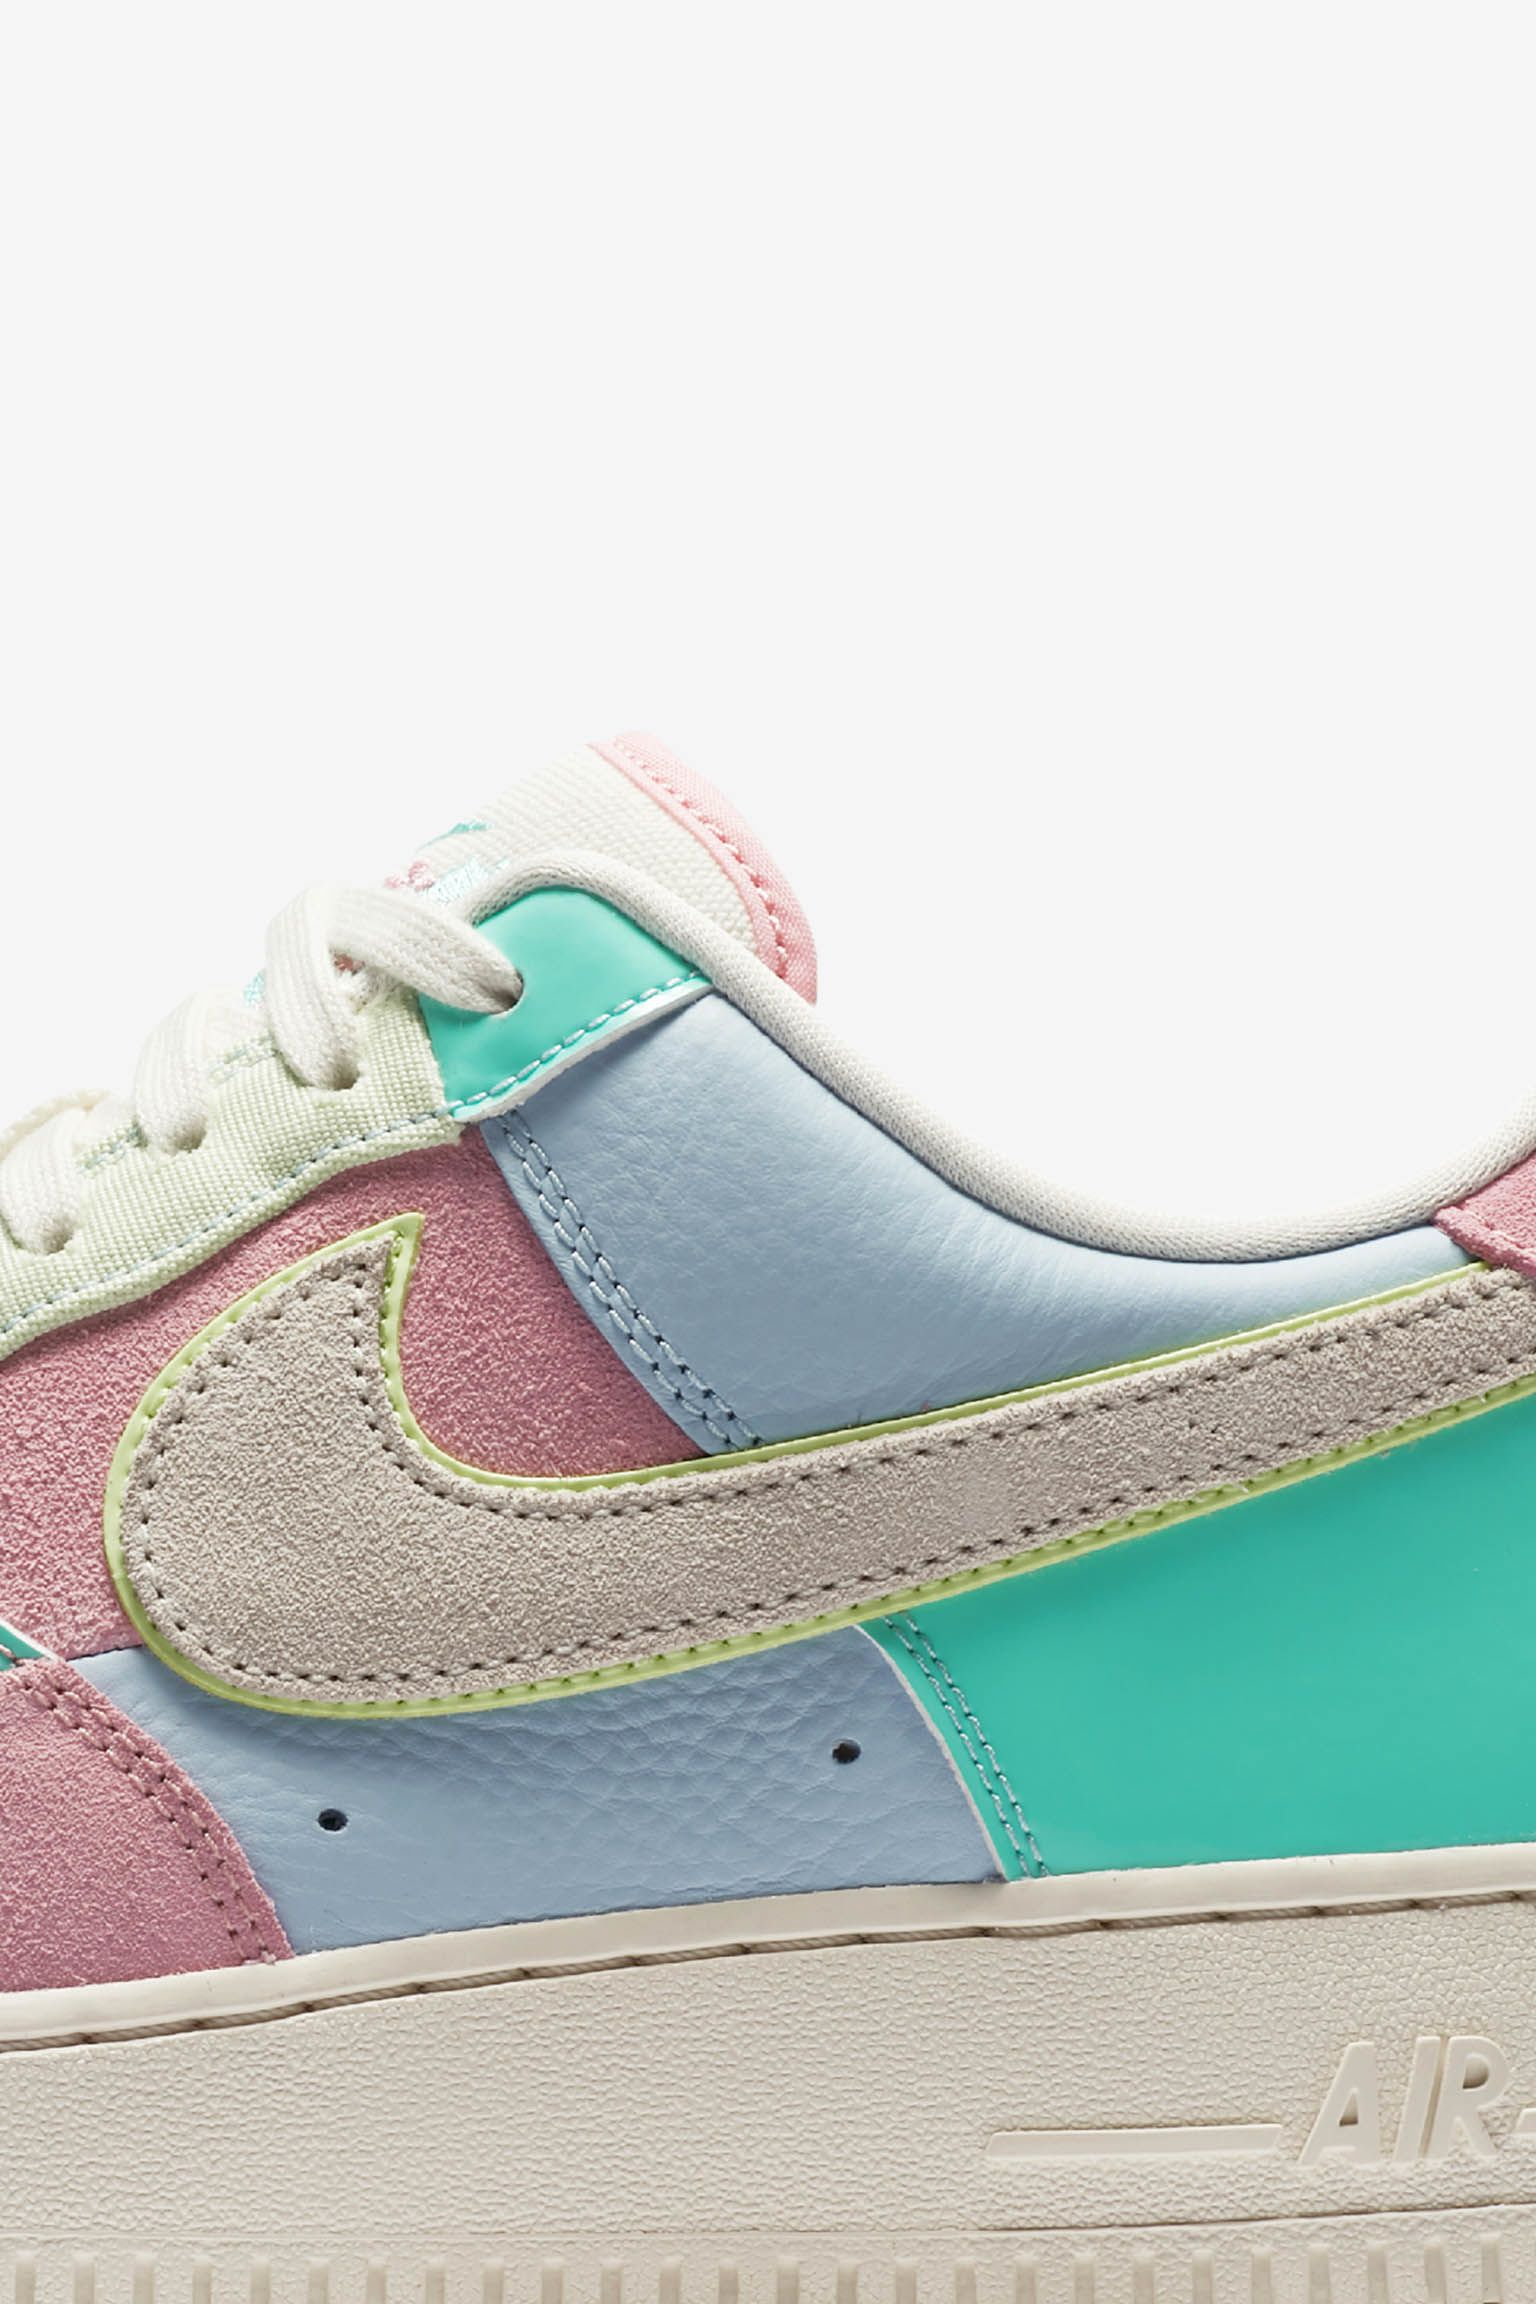 Nike Air Force 1 Low 'Ice Blue & Sail' Release Date